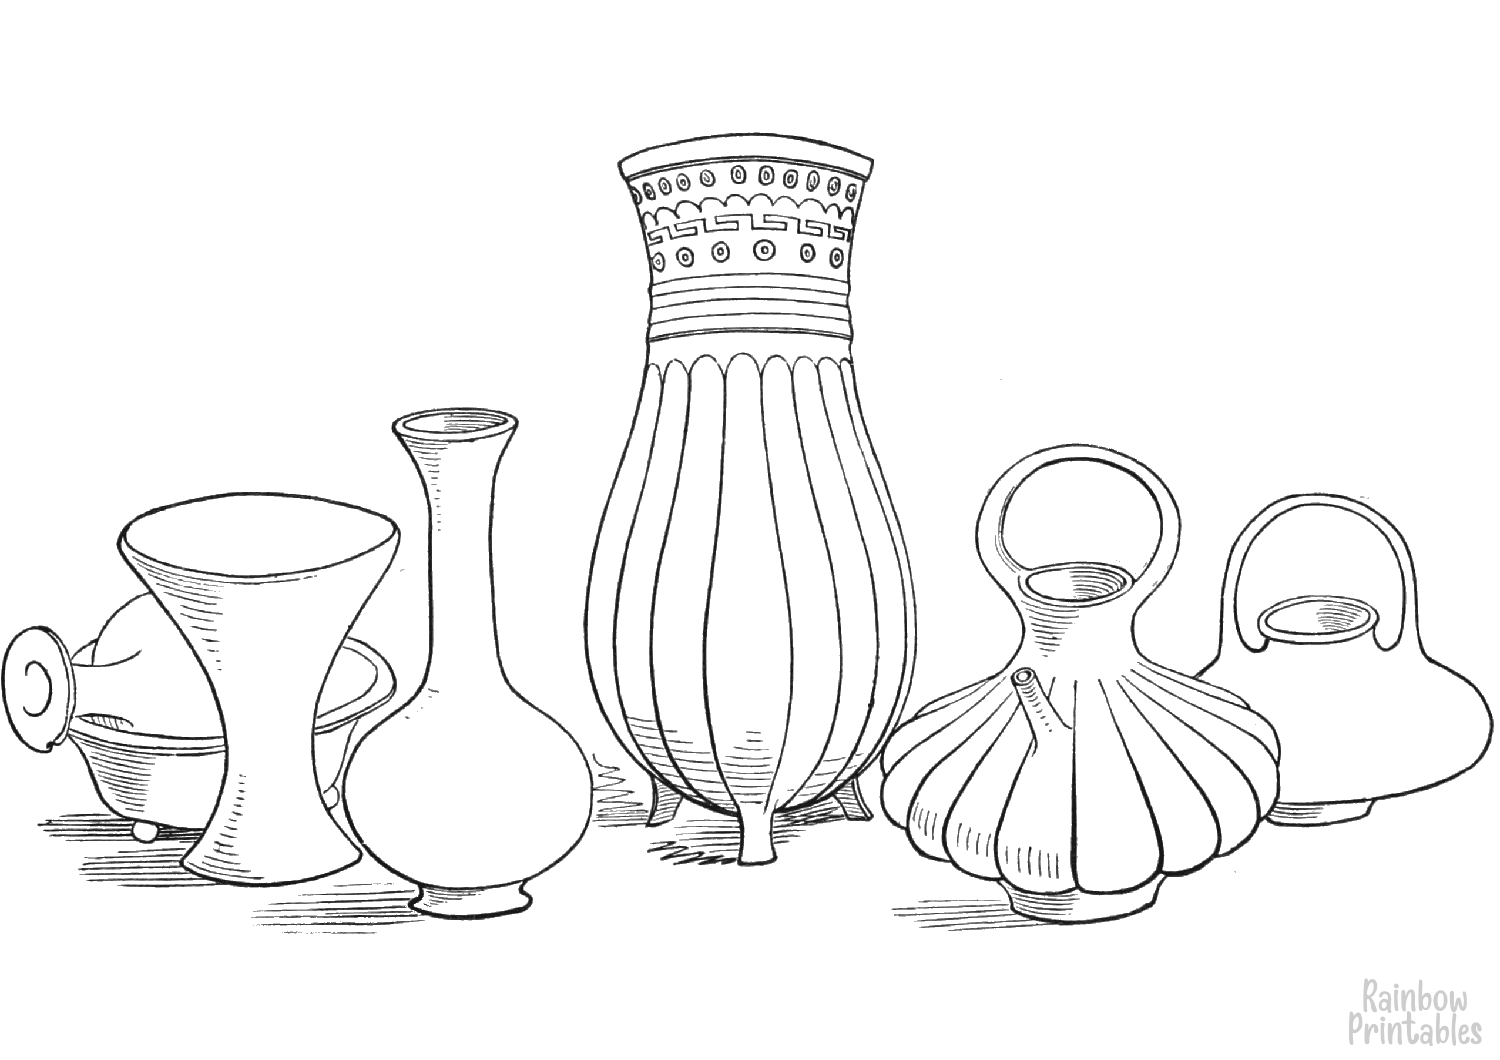 aztec ancient vases and vessels coloring page